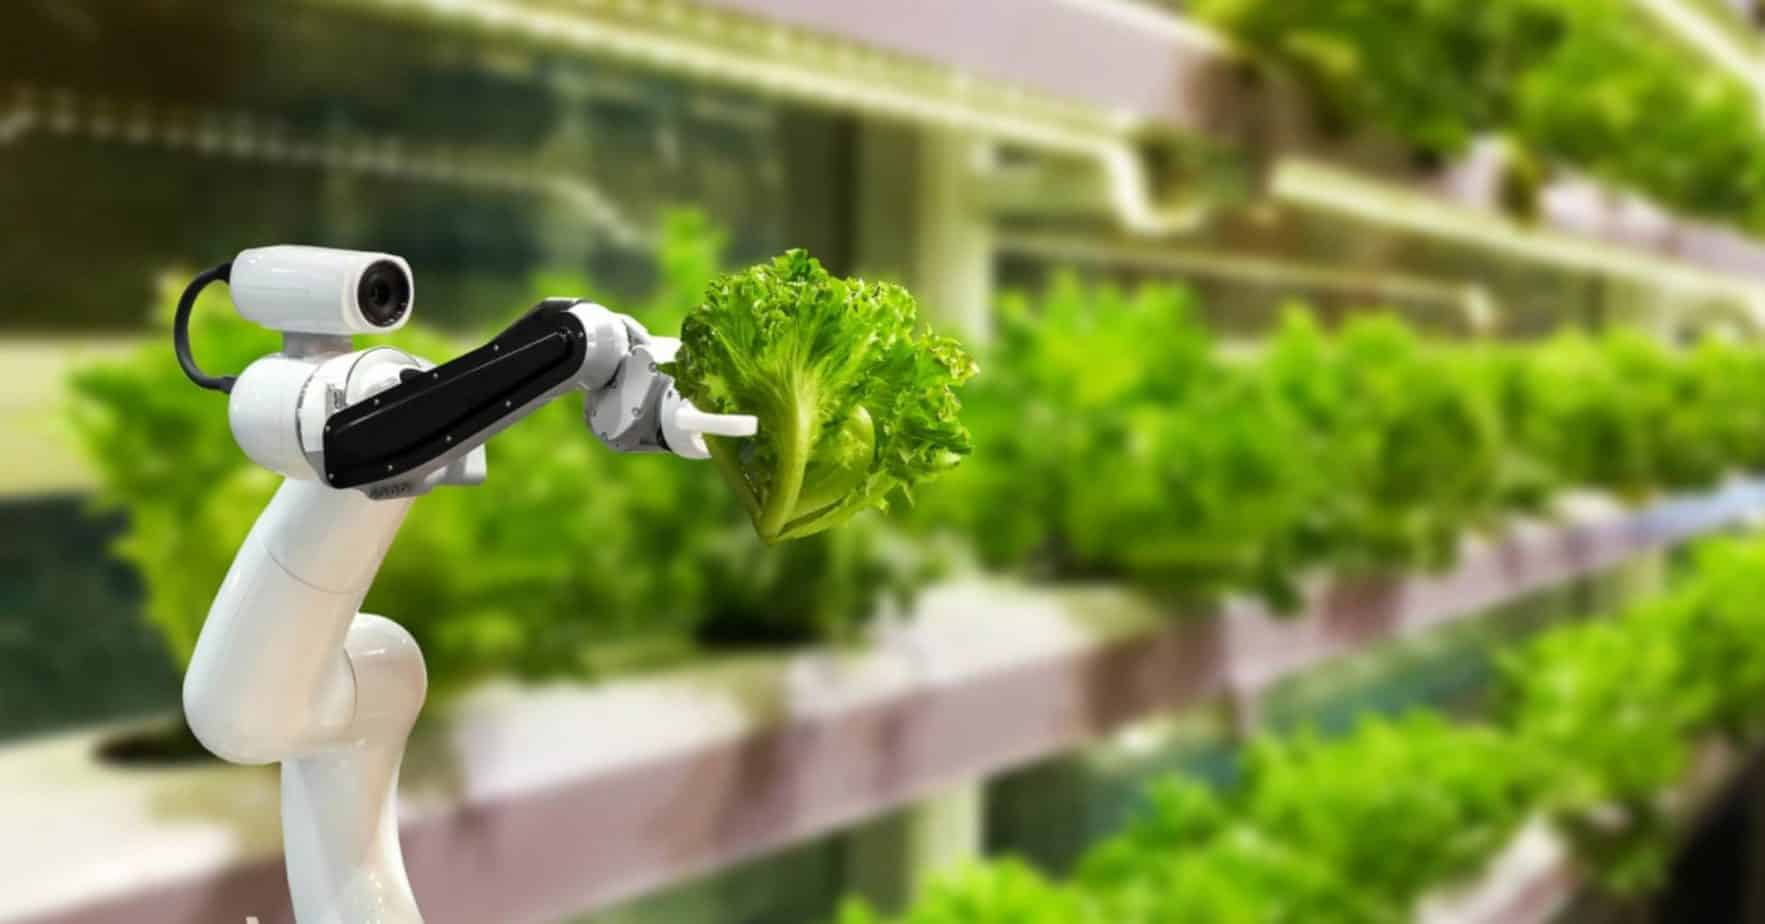 Agriculture Events: Another eventful week lies ahead in agriculture. The World Agri-Tech innovation summit is on Tuesday, exploring the role of technology in achieving a sustainable, efficient and healthy agri-food supply chain. Photo: Supplied/Food For Mzansi